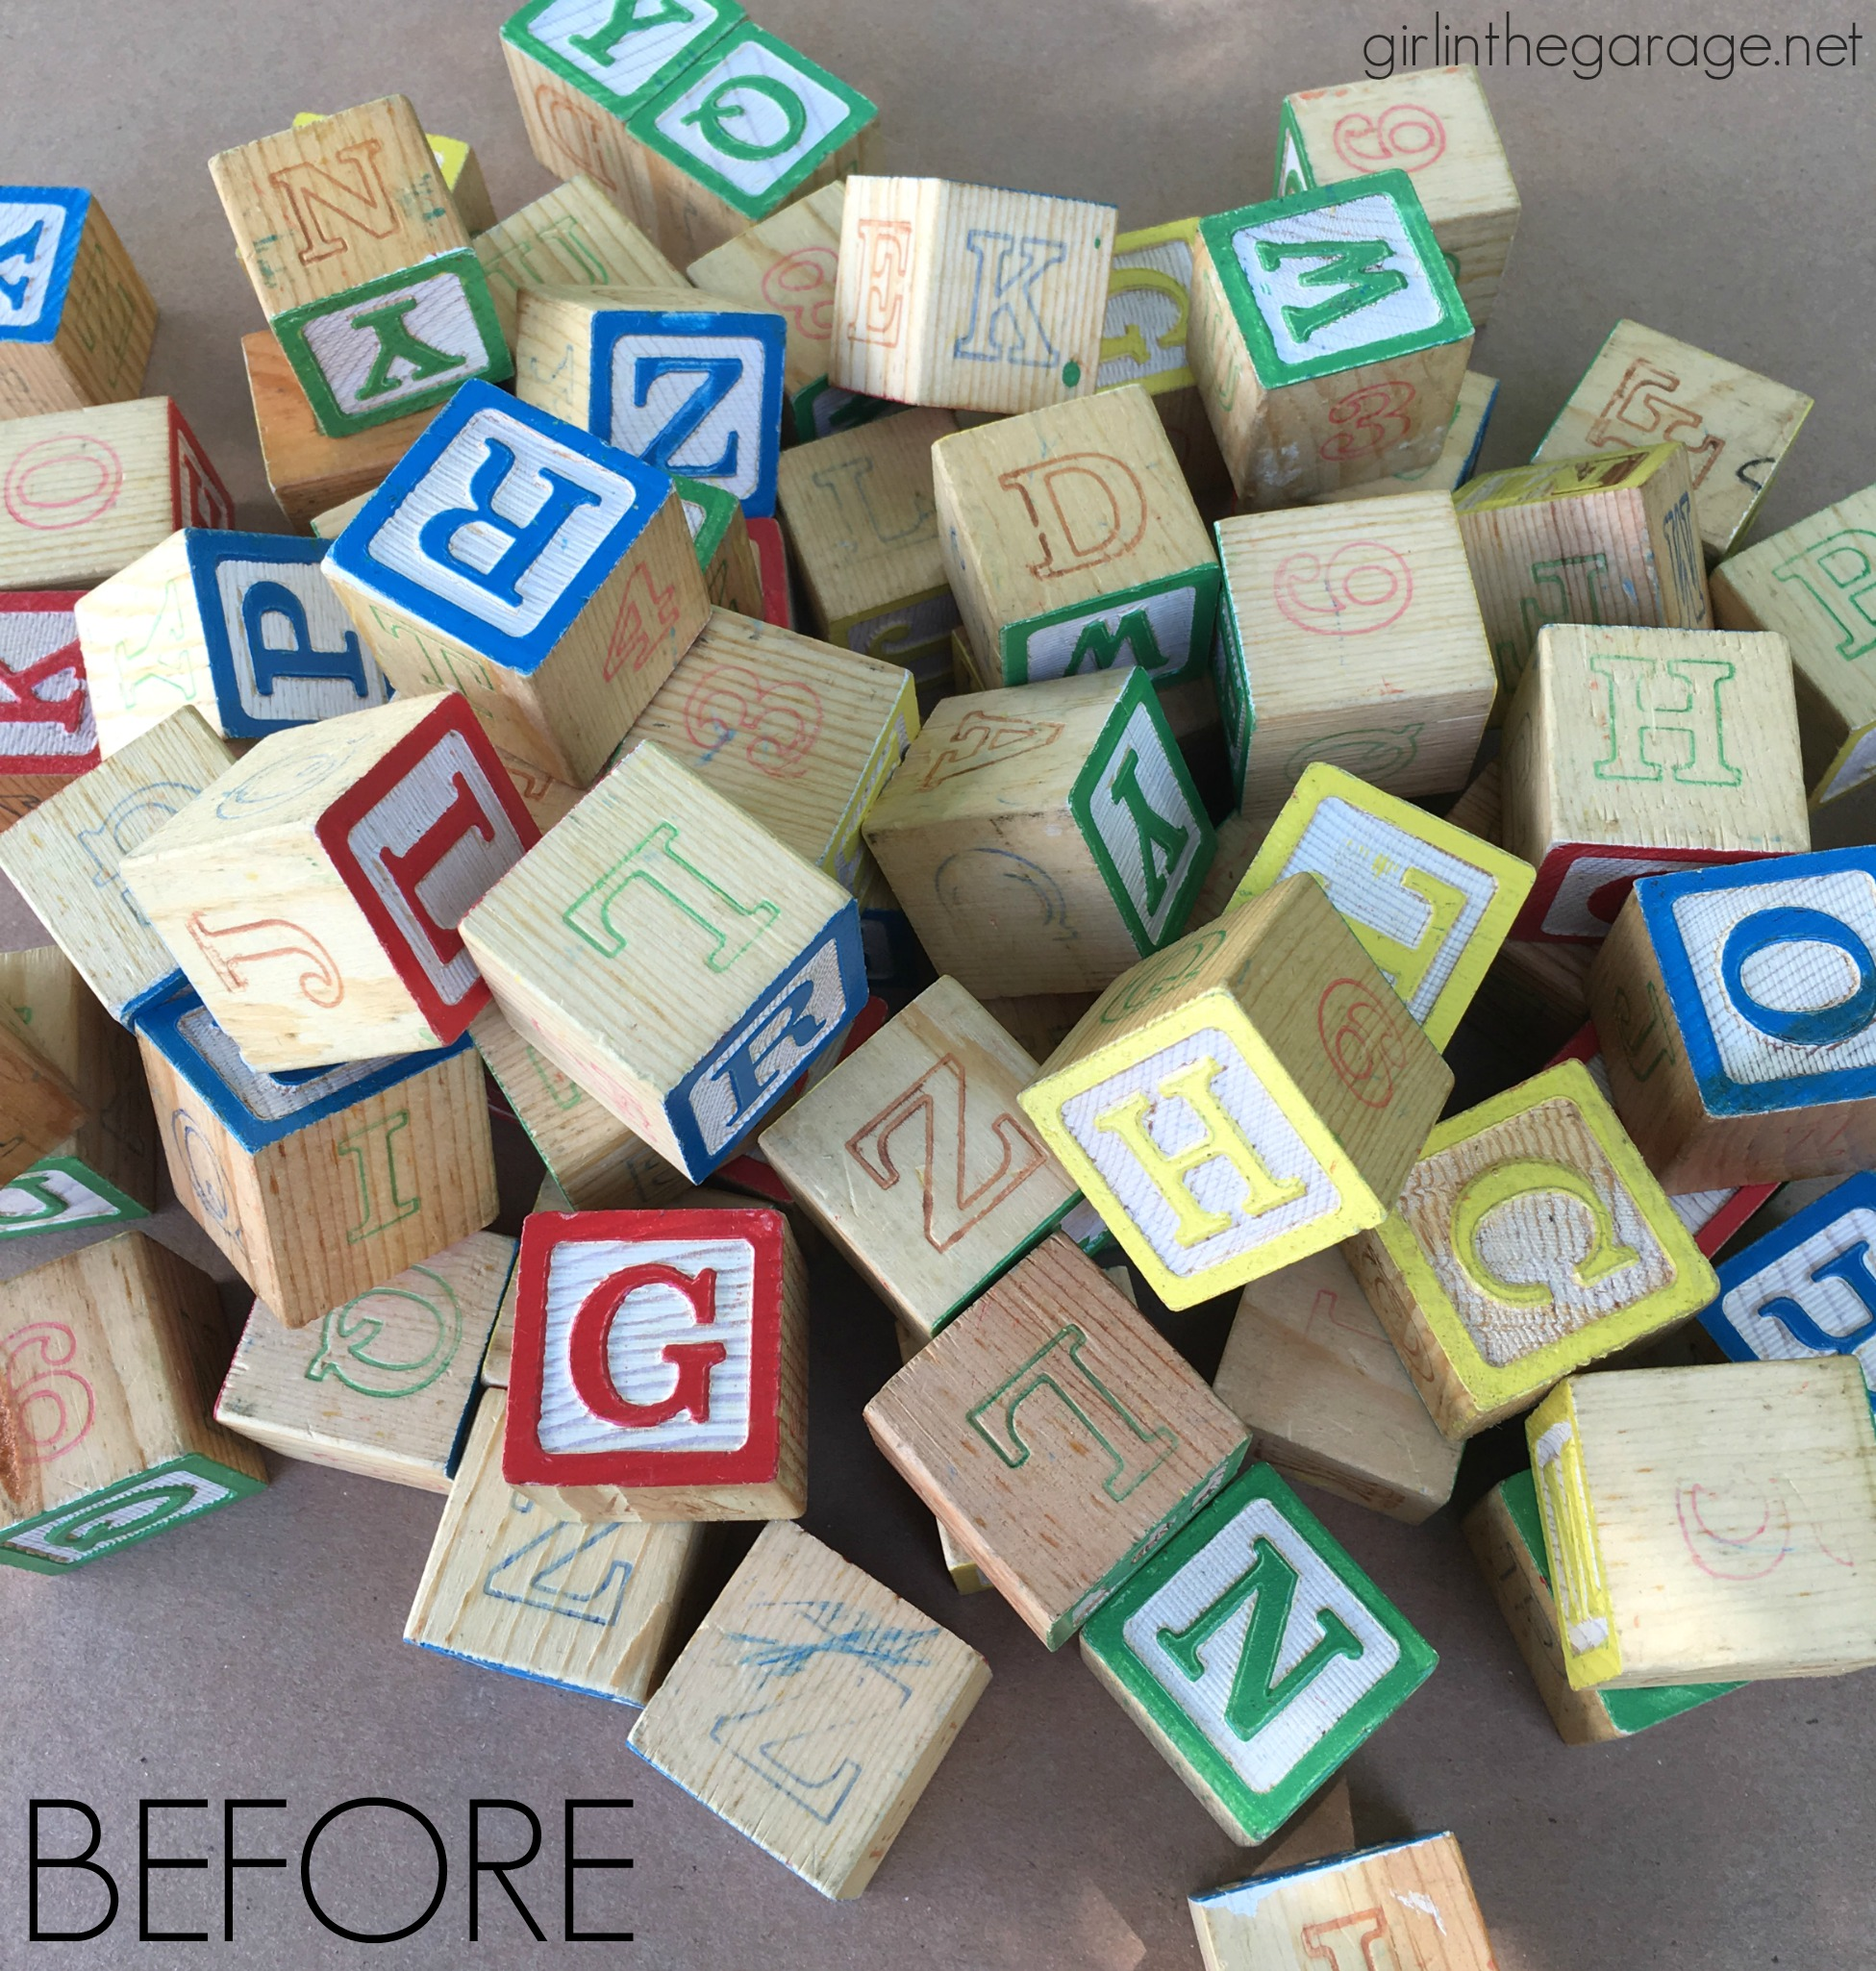 Upcycled painted alphabet blocks - Trash to treasure - Girl in the Garage